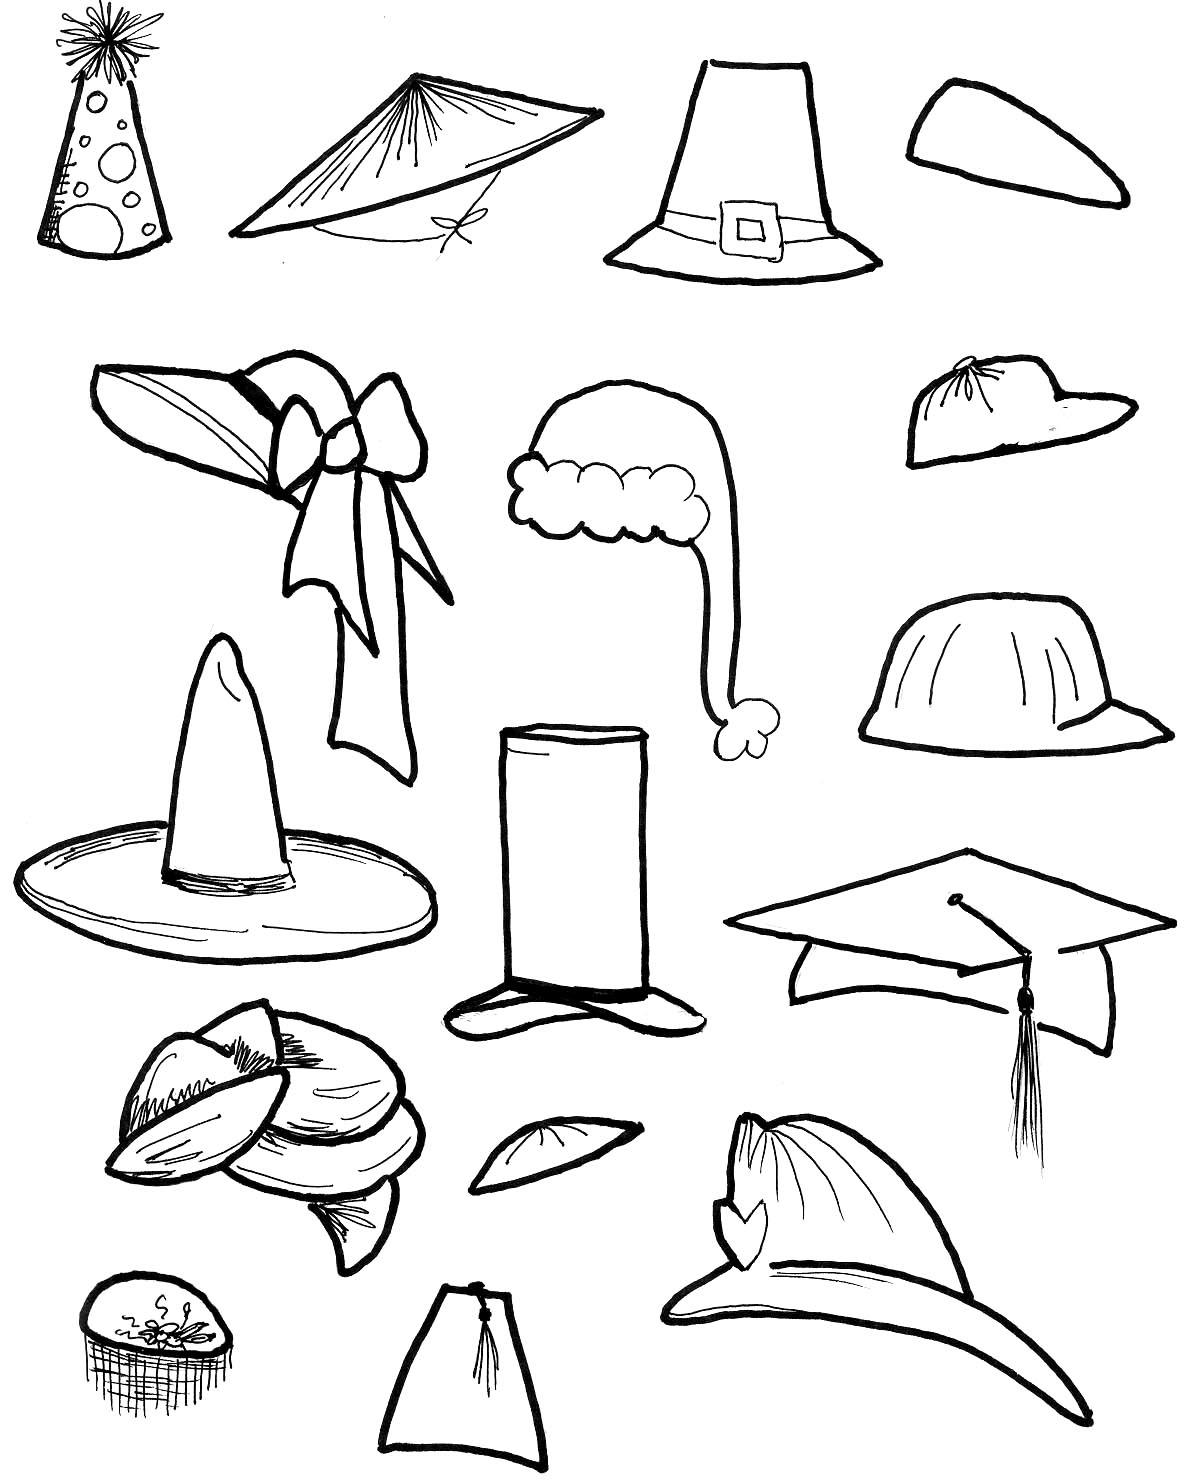 cap coloring page graduation cap drawing at getdrawings free download page cap coloring